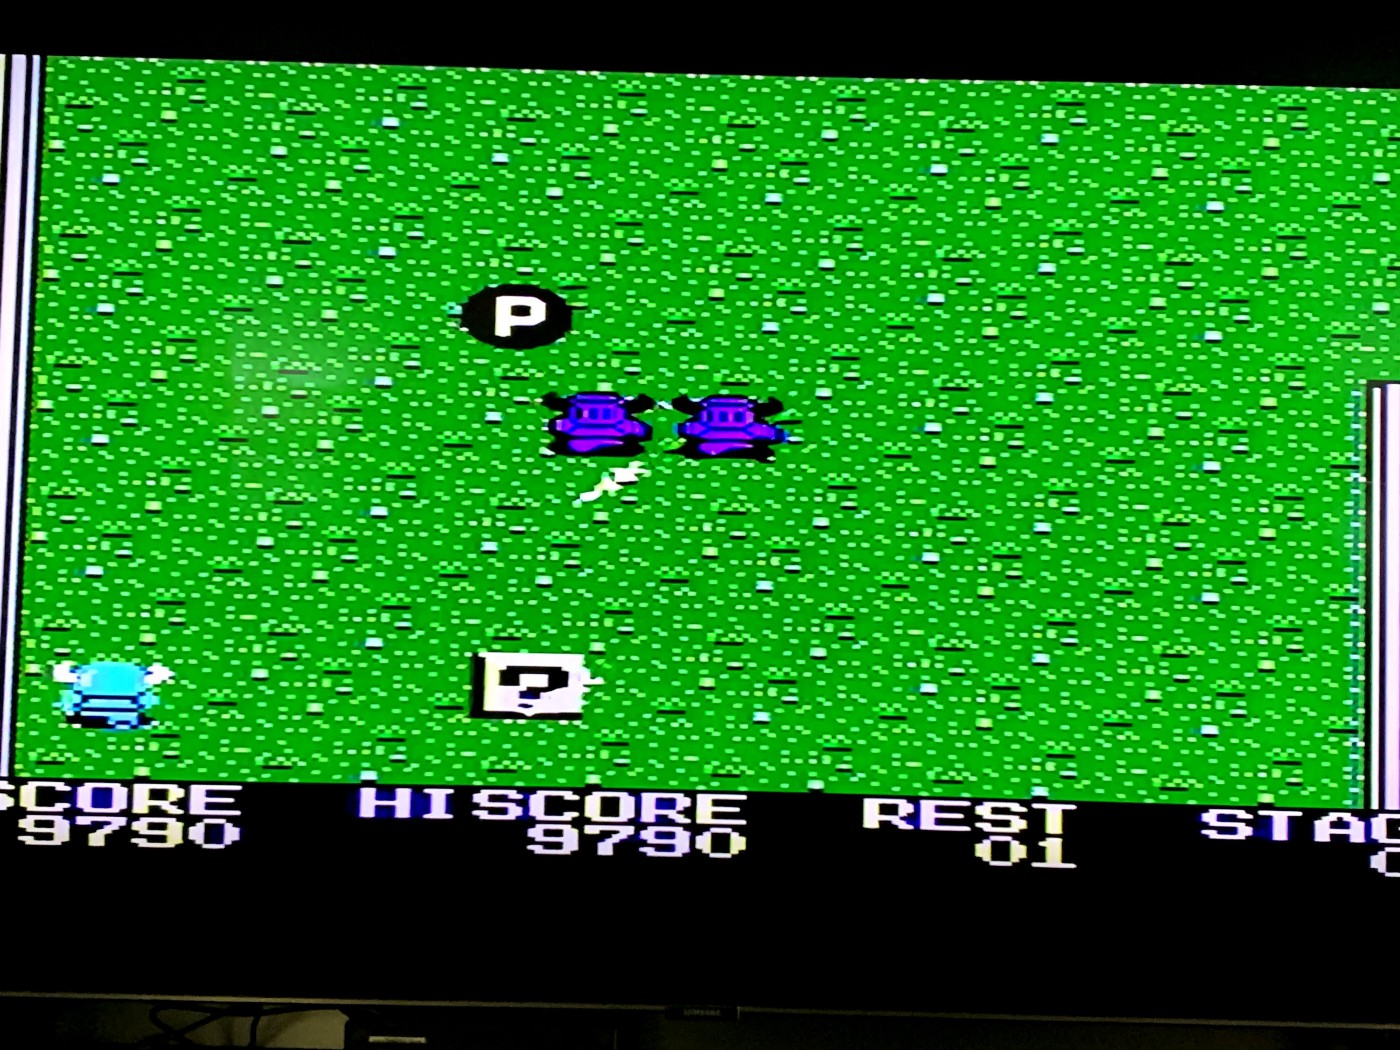 A scene from a classic video game where a knight is being attacked by two guards.